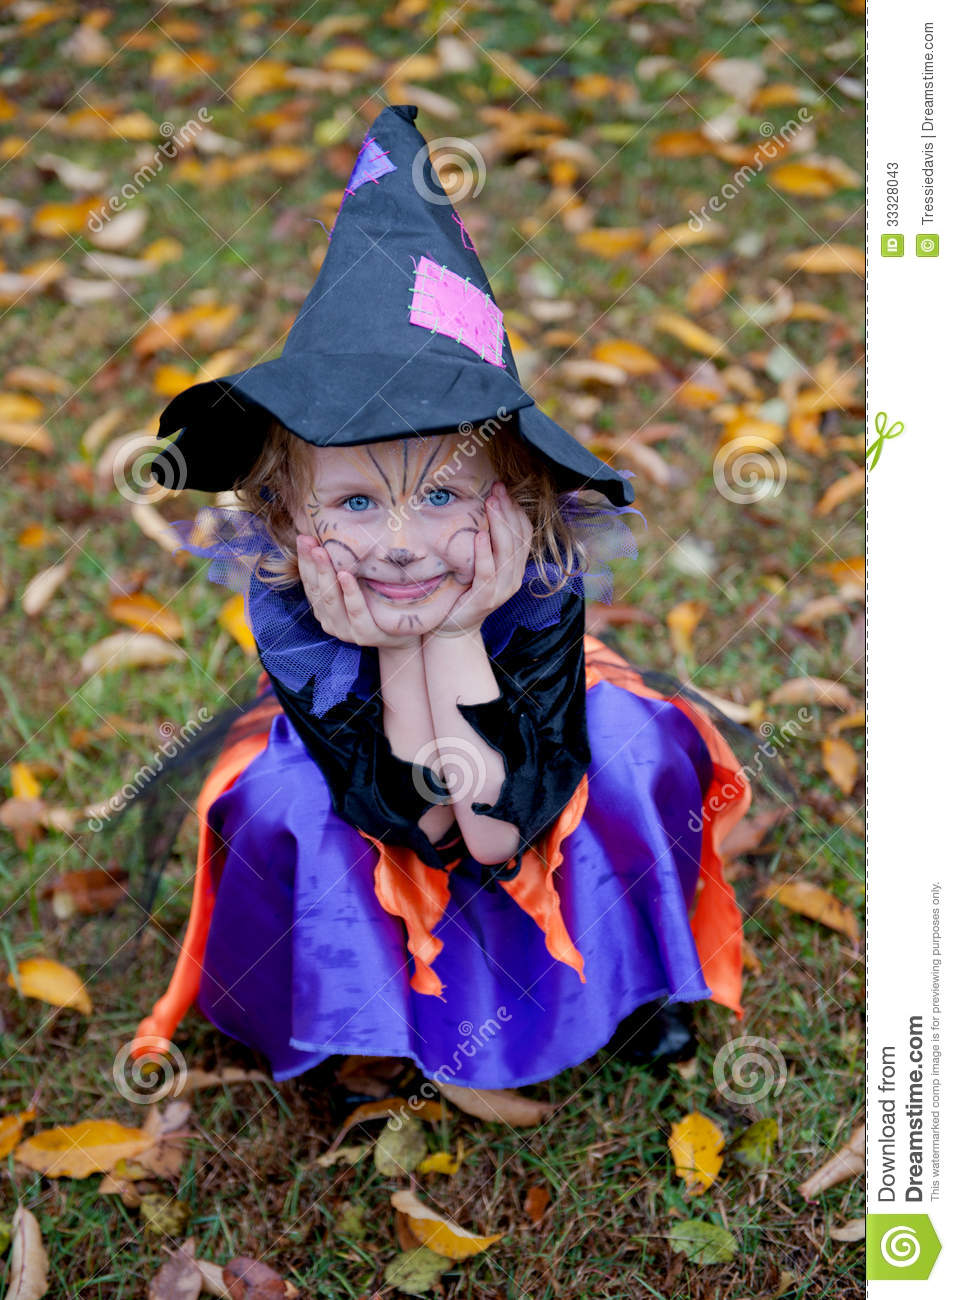 Silly Little Girl In Witch Costume Stock Image Image Of